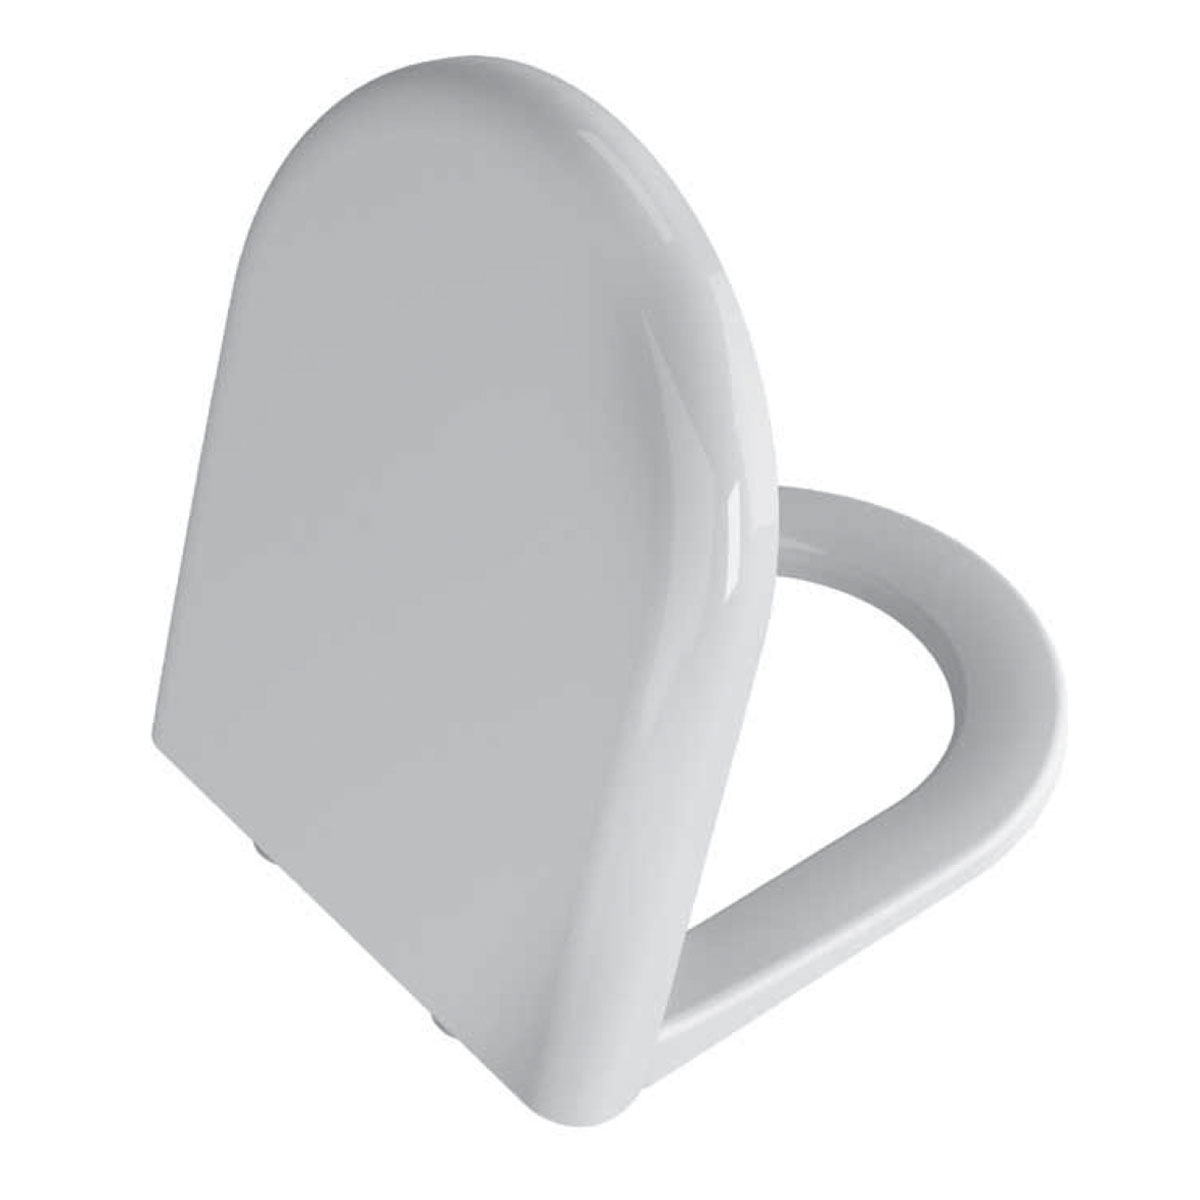 VitrA Zentrum Value Suite Close Coupled Toilet 1 Tap Hole Basin-2